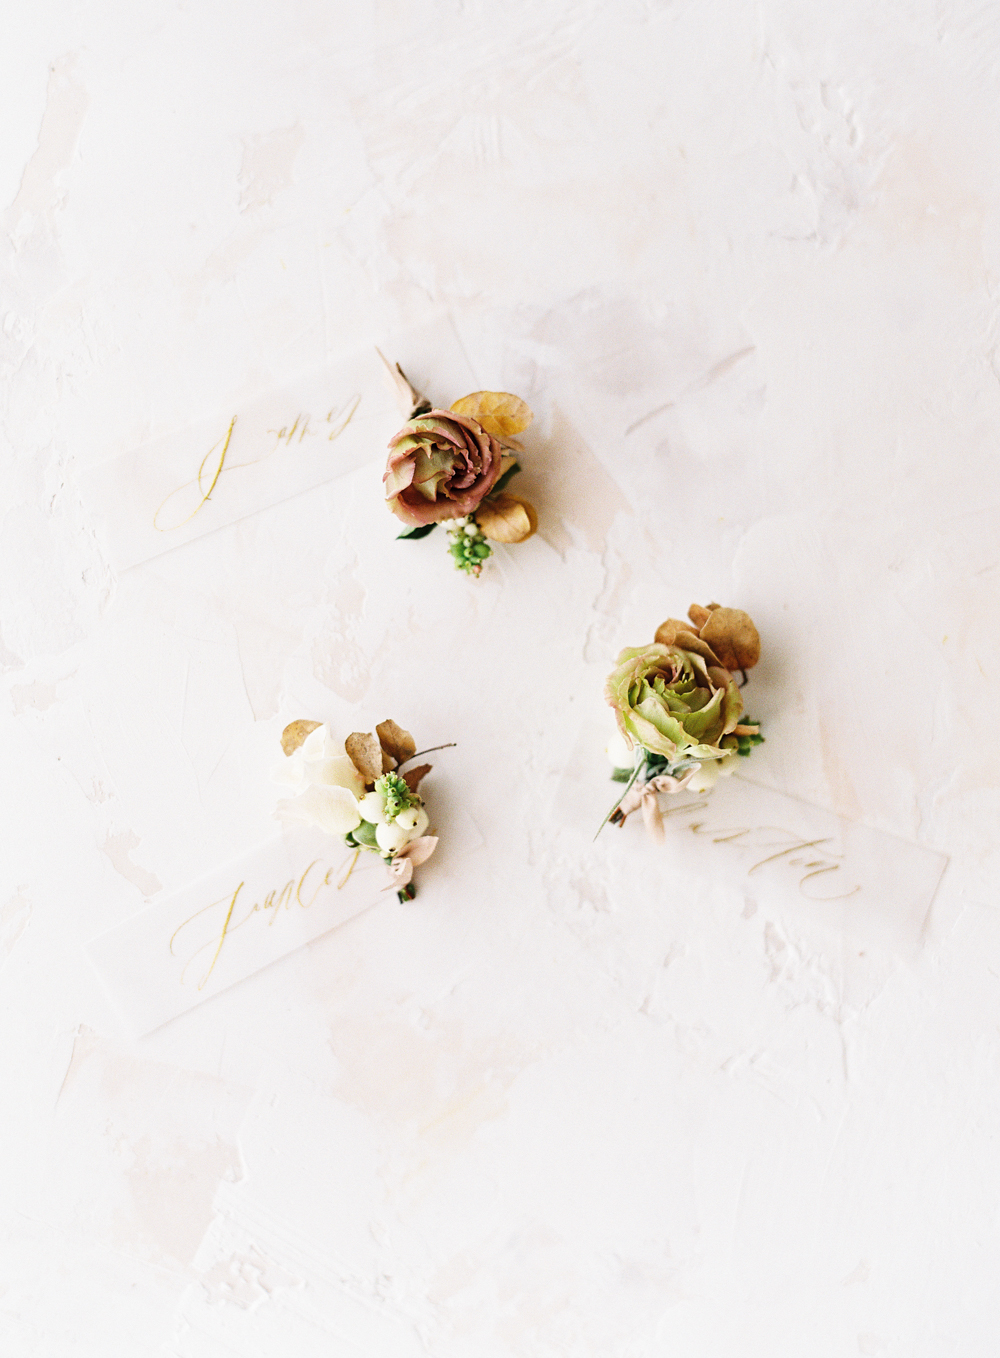 Neutral fall boutonnieres by Plenty of Petals | neutral wedding | neutral floral design| European Wedding Inspiration | French wedding | France wedding photographer | Southern California film photographer | San Diego wedding photographer | Whiskers and Willow Photography